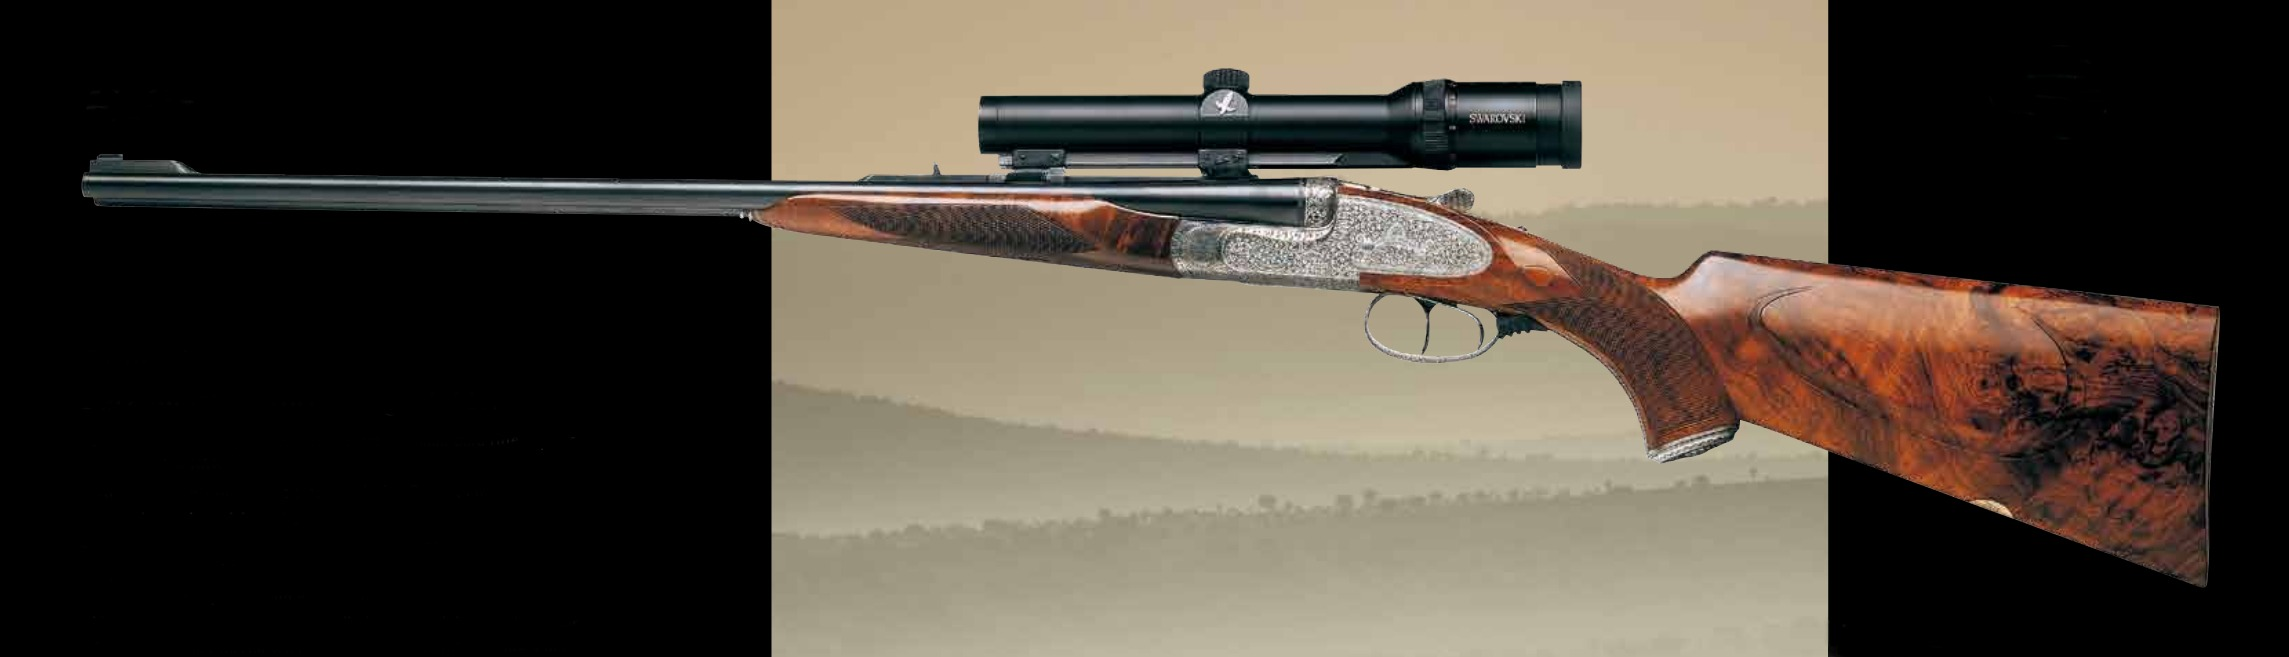 Grulla Armas E95 double rifle